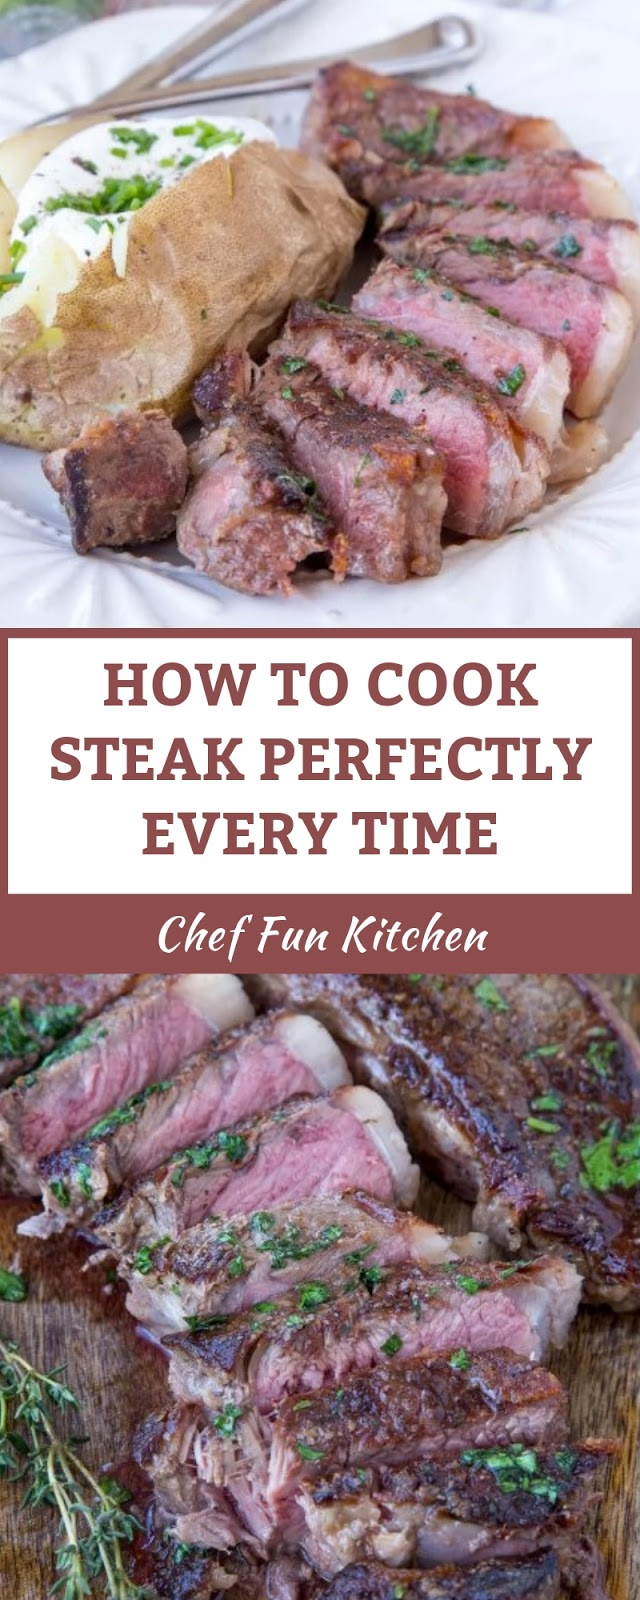 HOW TO COOK STEAK PERFECTLY EVERY TIME